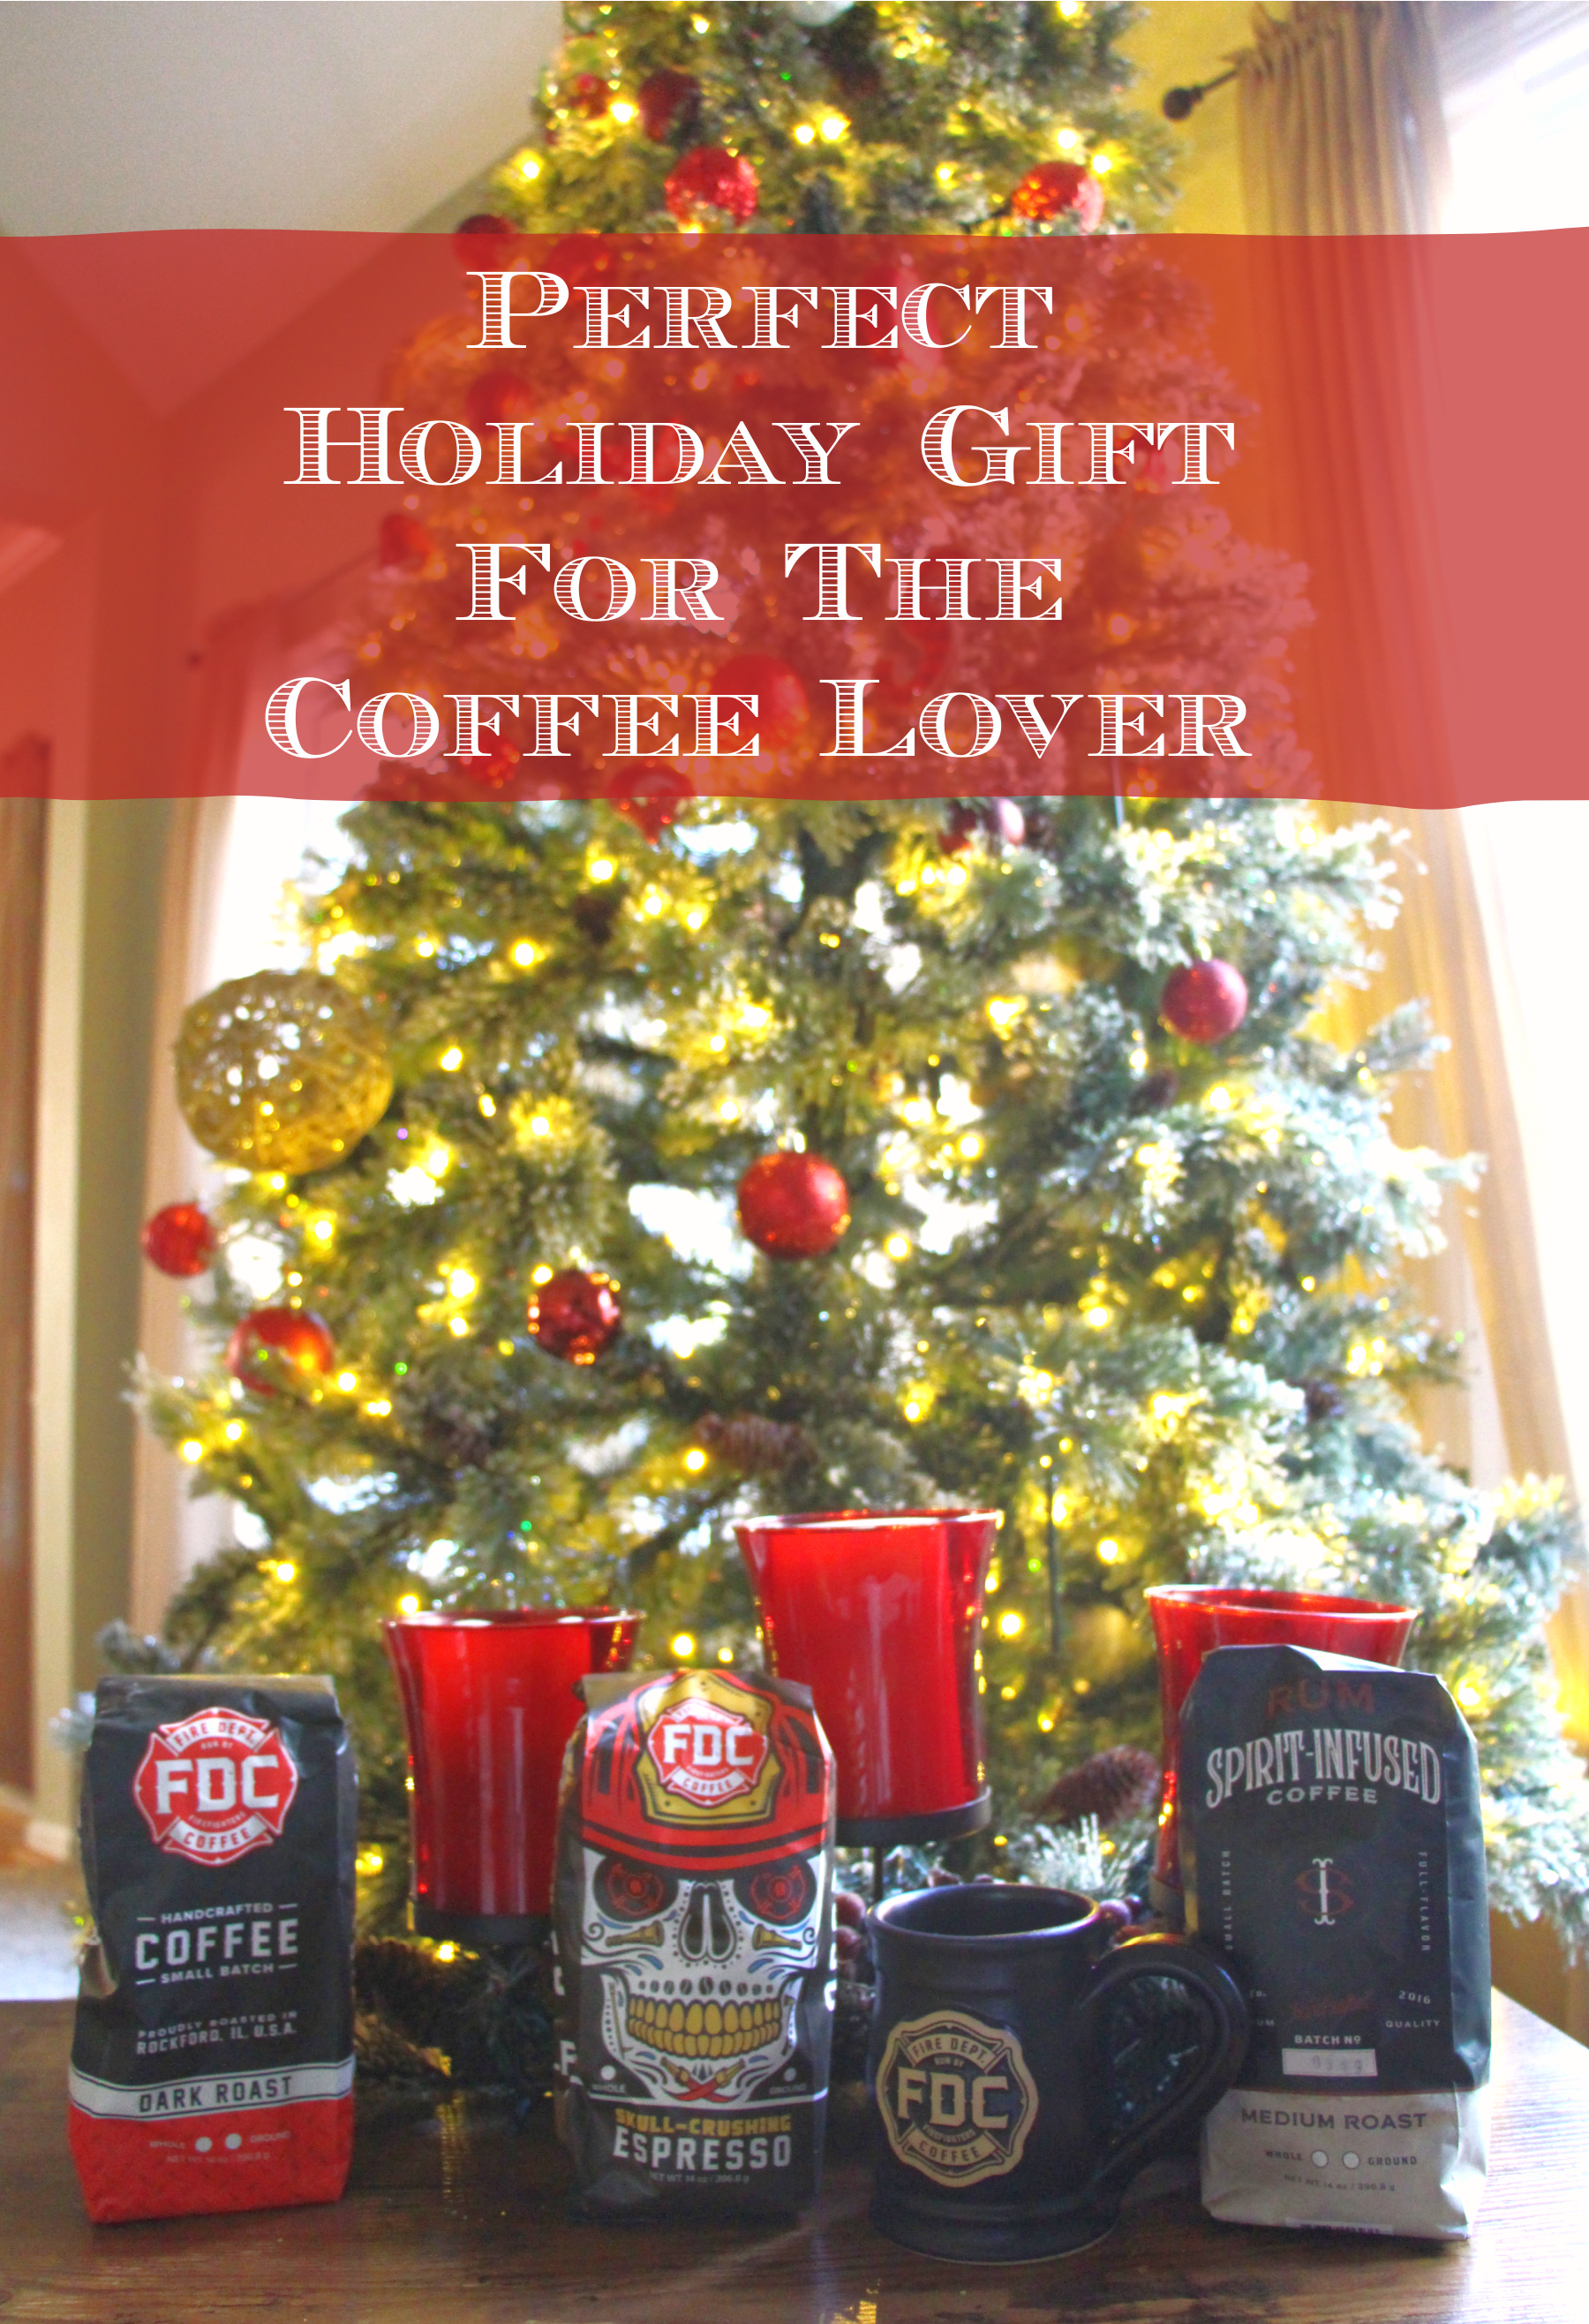 Perfect Holiday Gift For The Coffee Lover